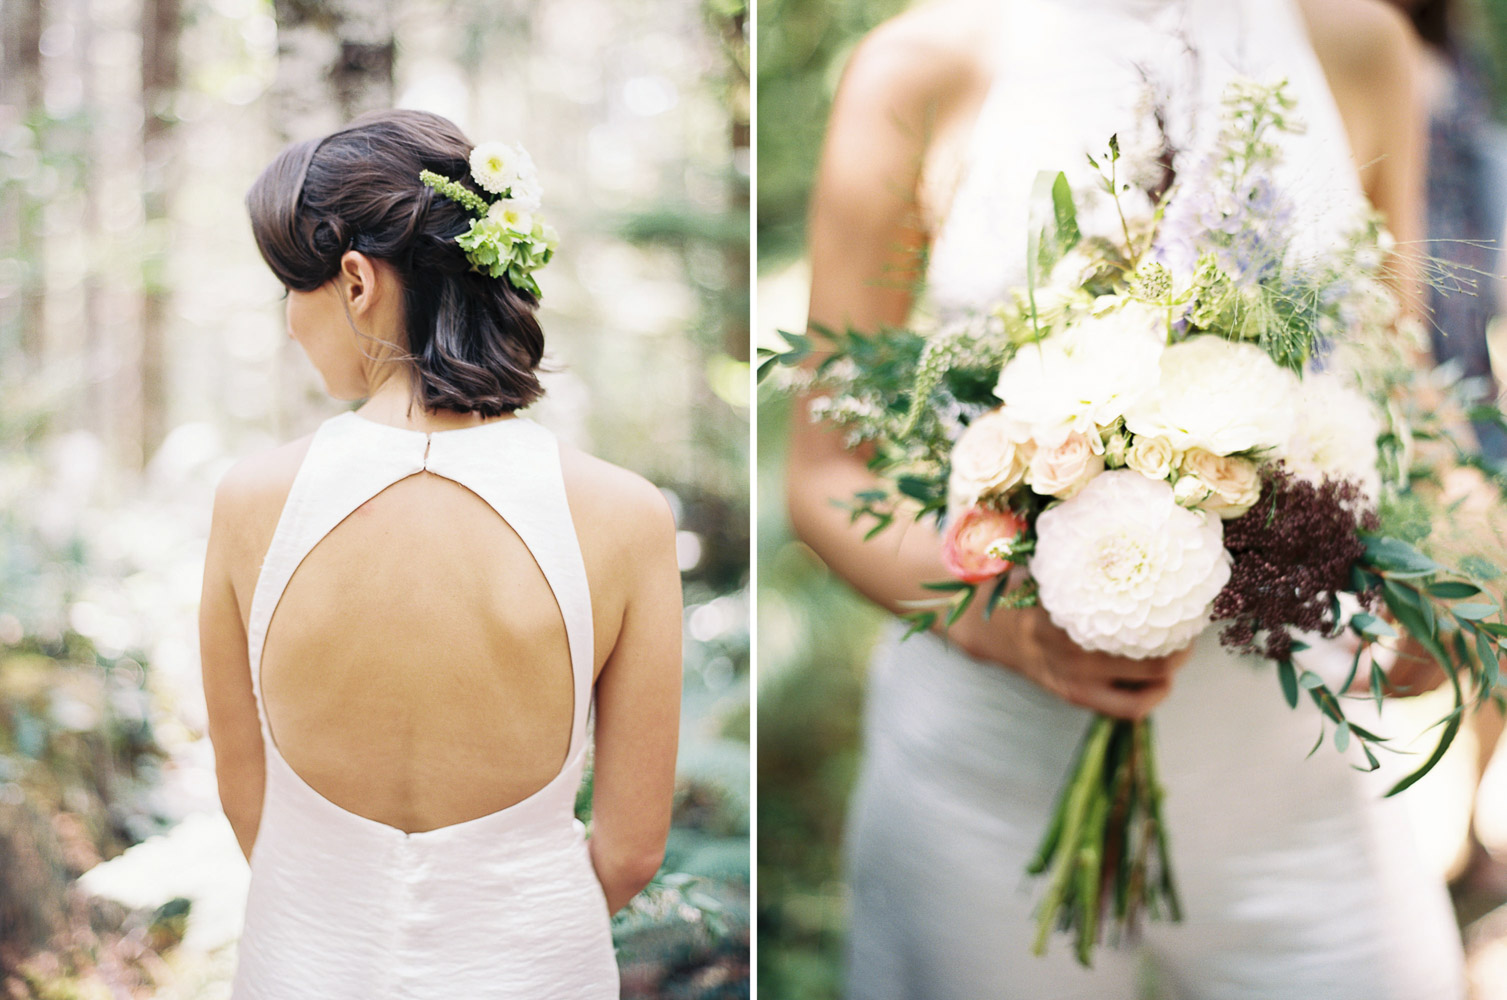 Bridal details captured by Seattle Wedding Photographer Anna Peters at Wellspring Spa Wedding at Mt. Rainier